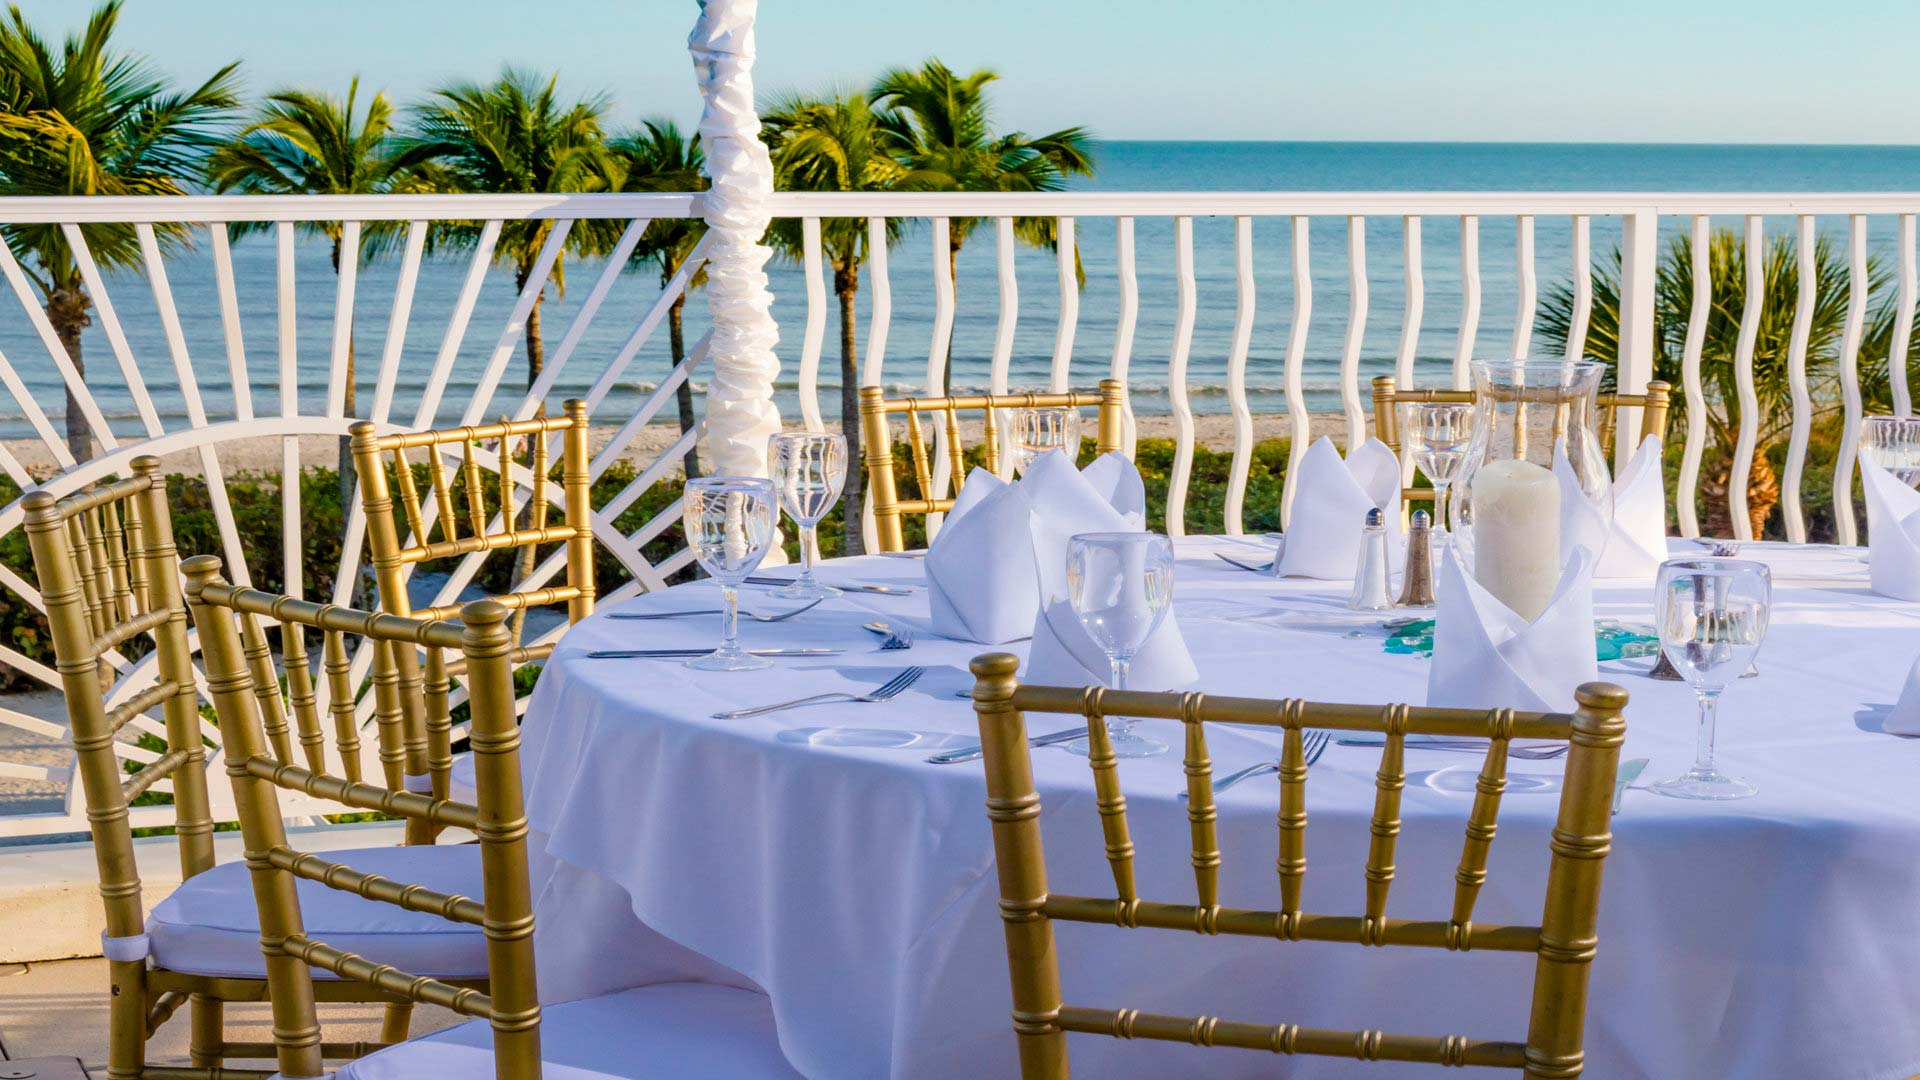 Sanibel Island Hotels: Sundial Announces New Catering Sales Manager